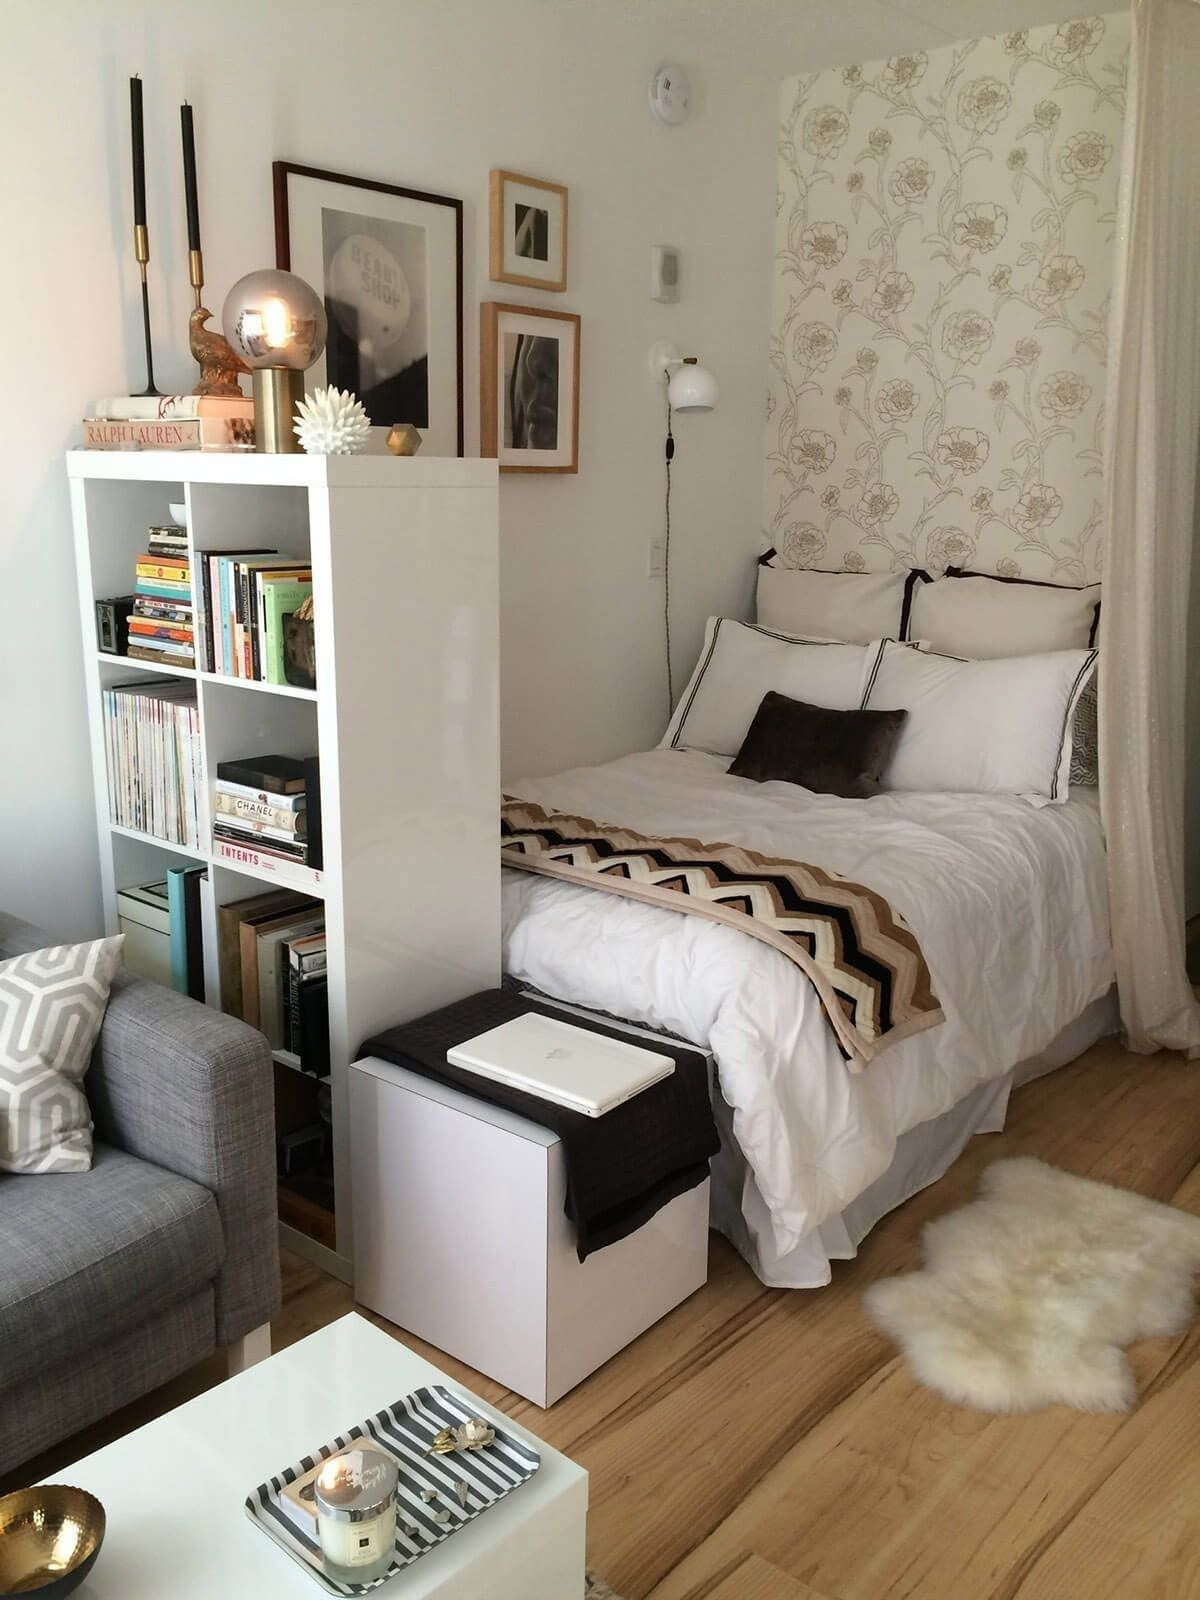 20+ Cozy Bedroom Which Makes You Don't Want to Leave Your Bedroom - Enthusiastized